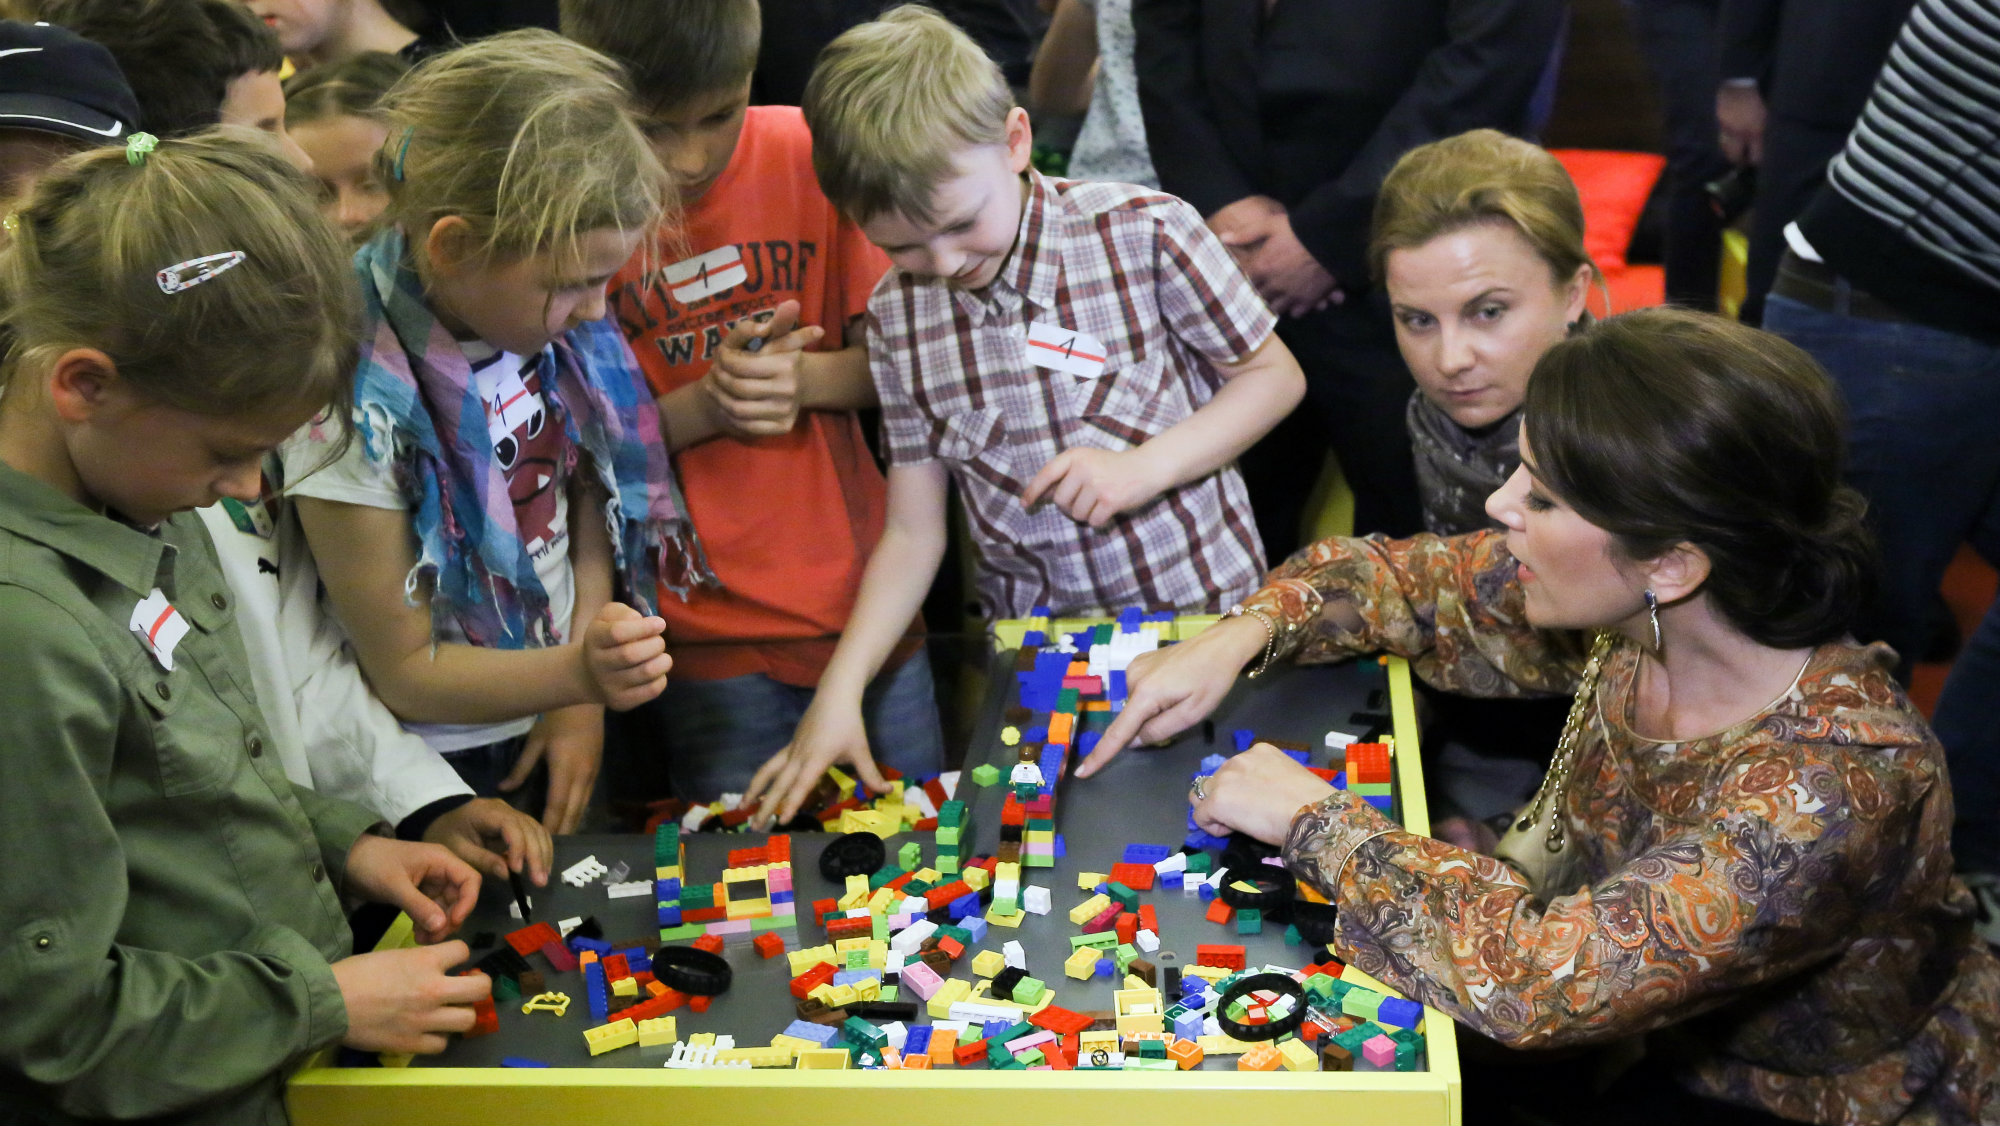 Princess Mary of Denmark (R) plays with children during the LEGO's creative workshops for children in Warsaw, Poland.